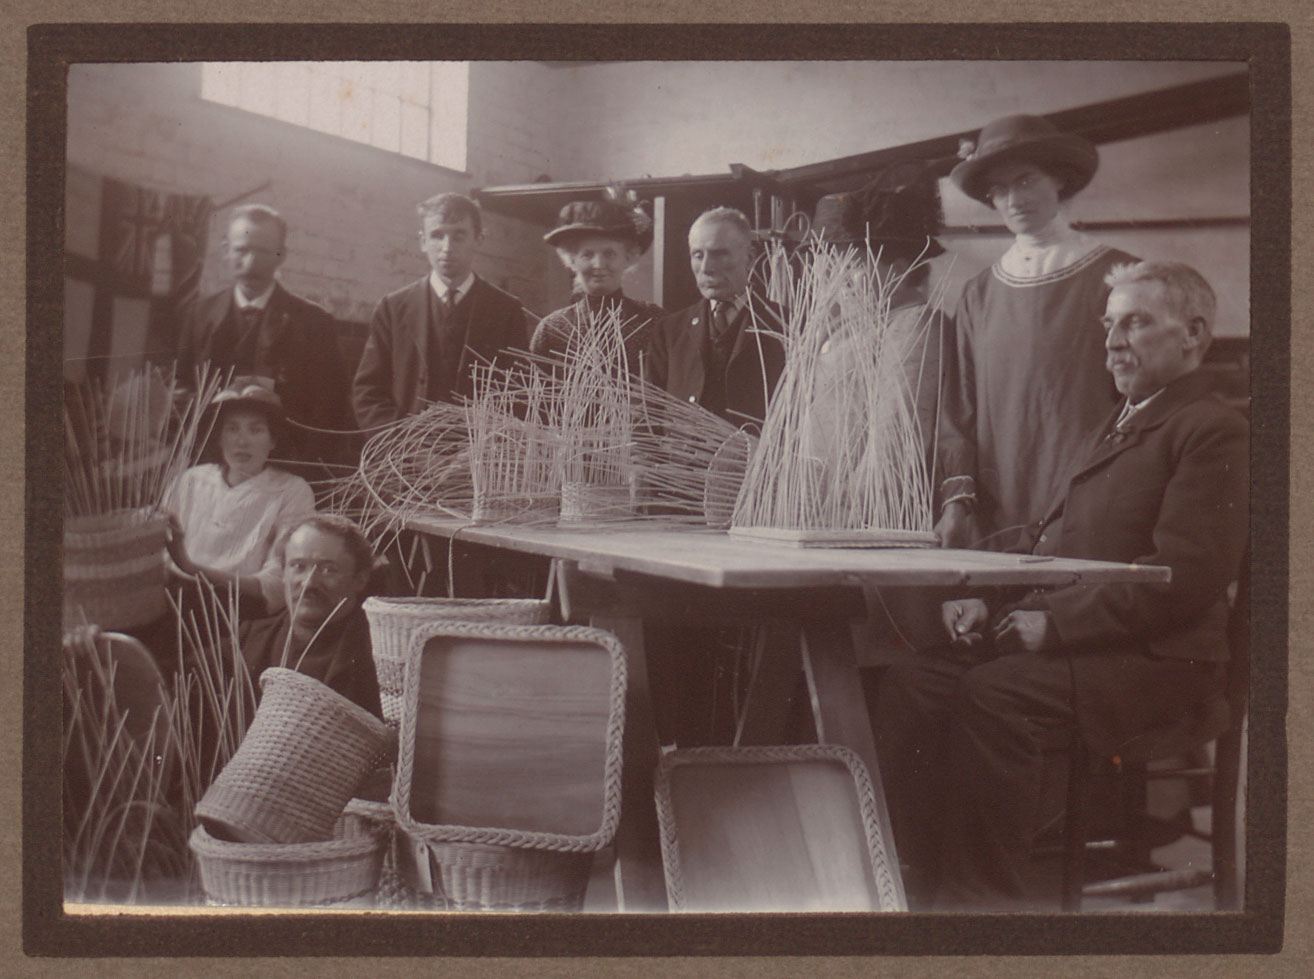 Ladies in hats and men in suits and ties sitting with woven baskets